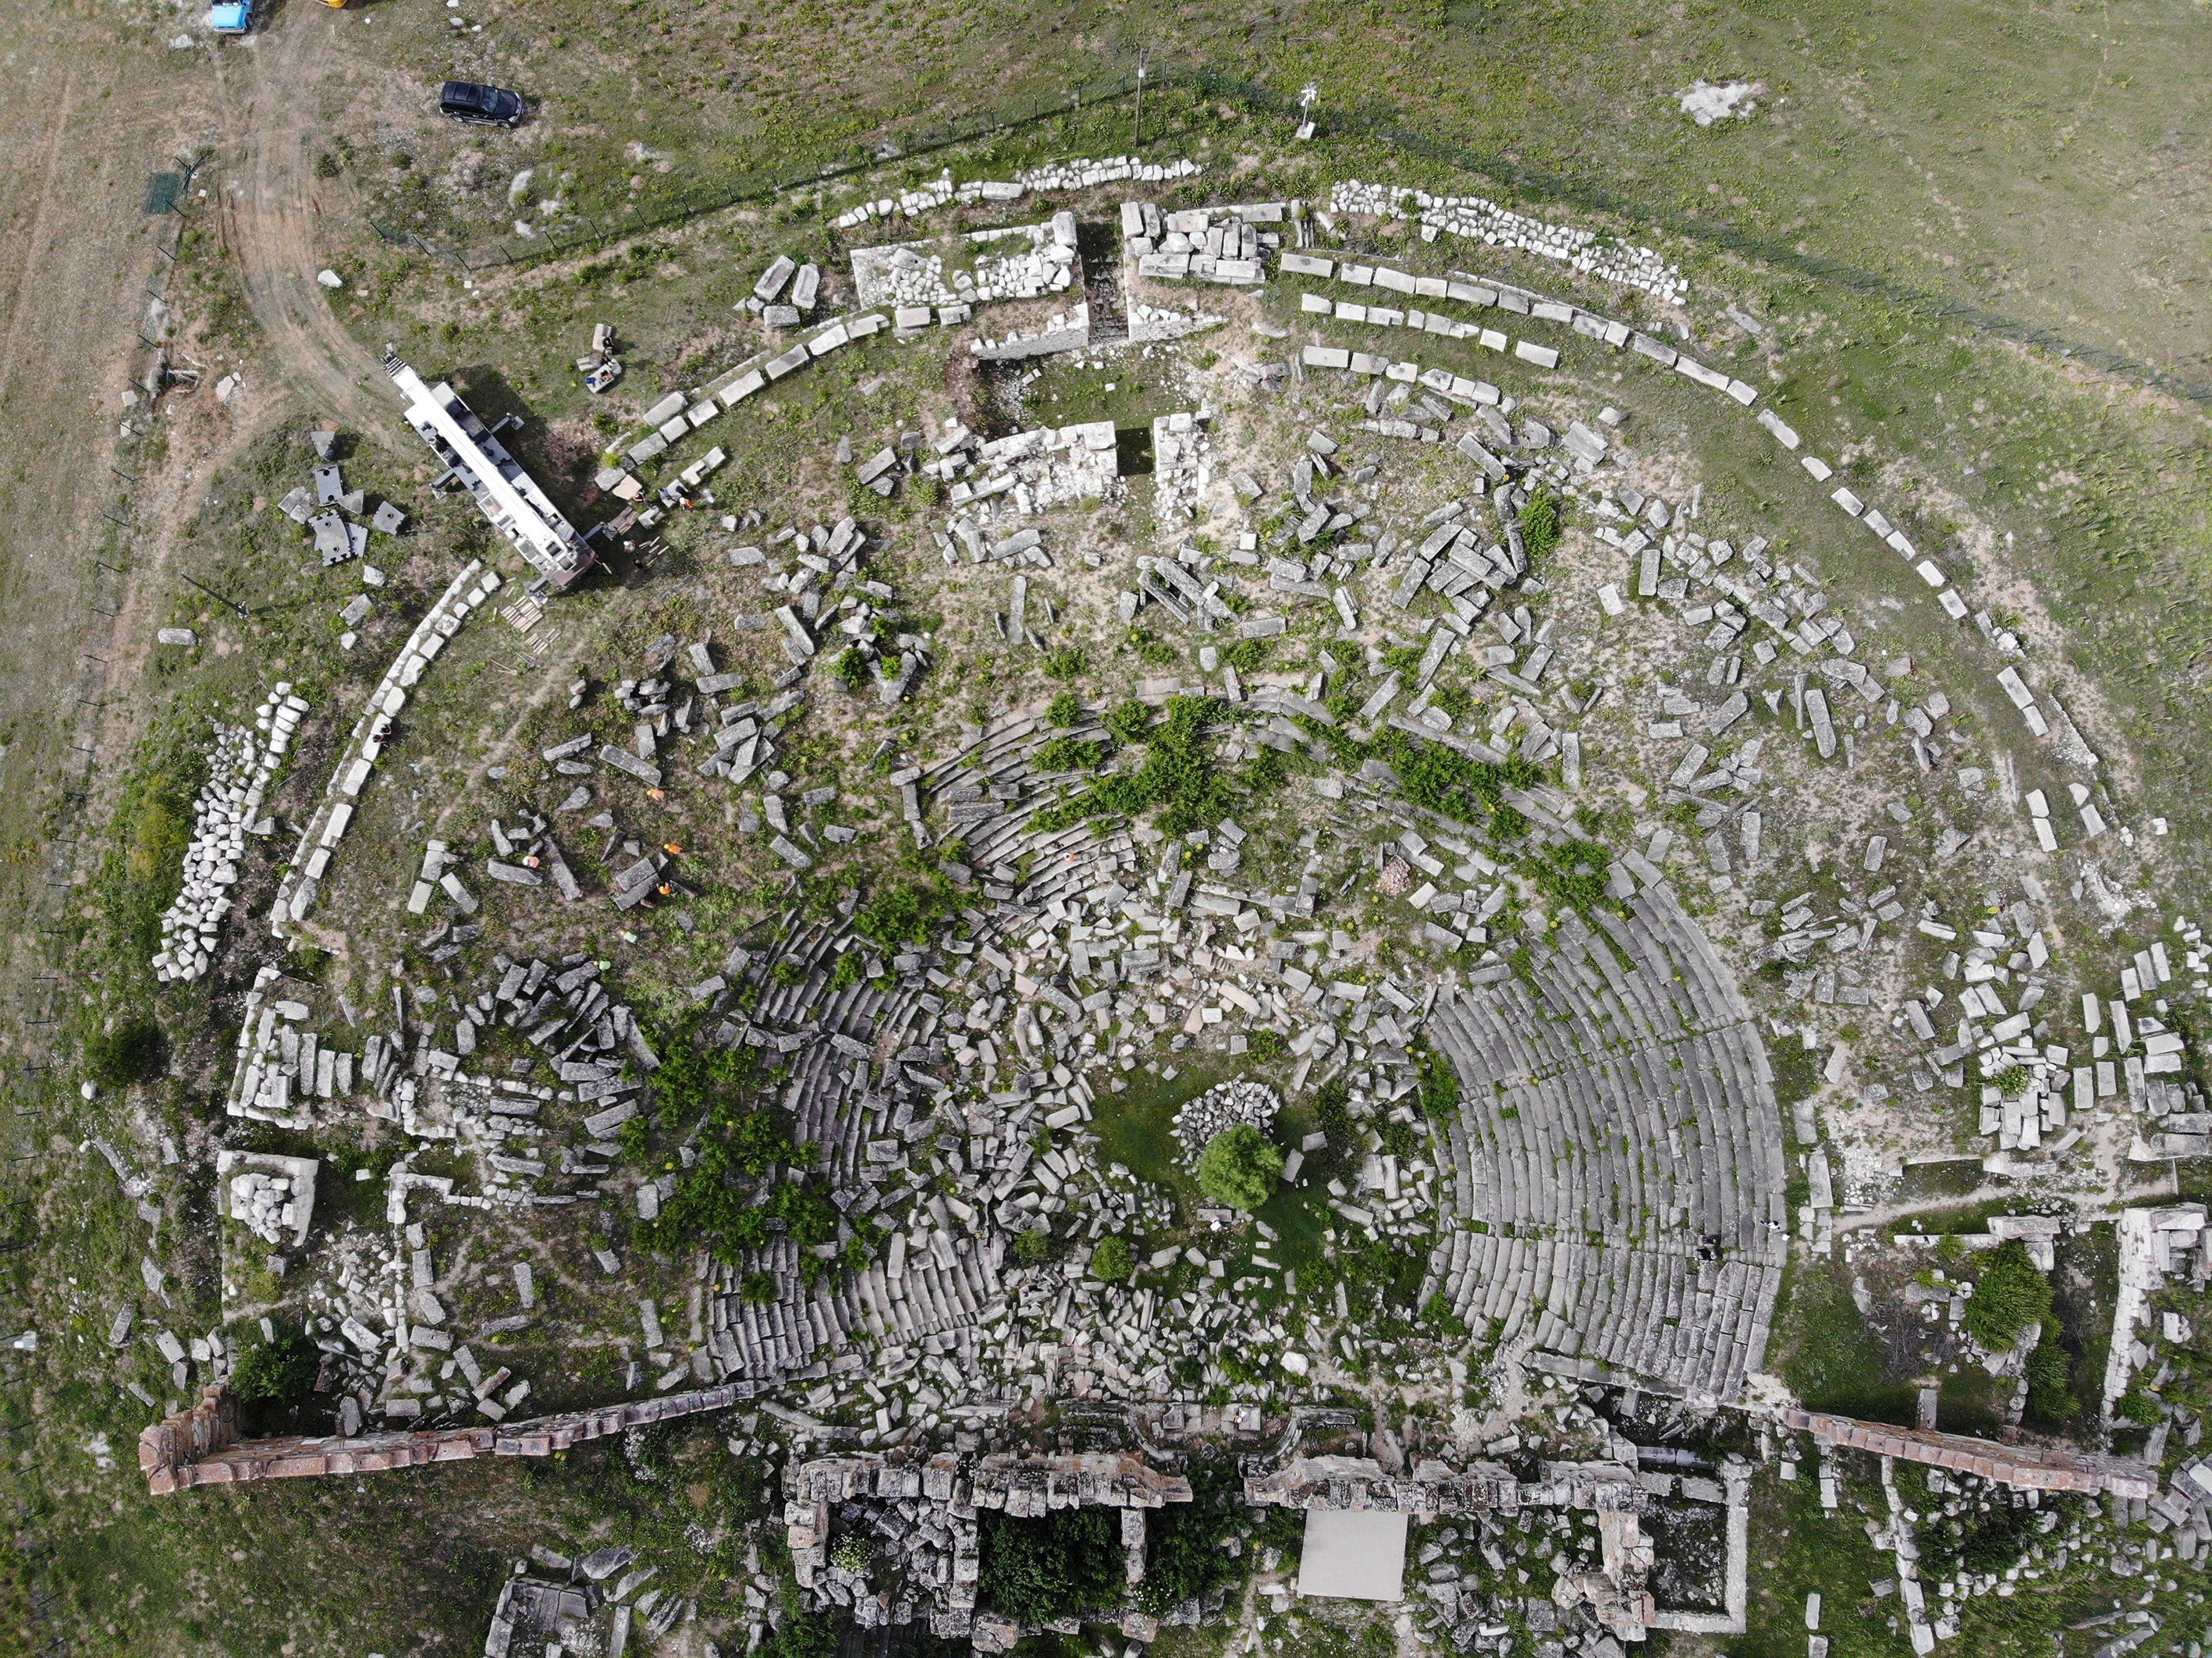 Though damaged by natural disasters such as earthquakes and landslides, the ancient theater and stadium remain mostly intact. (AA Photo)